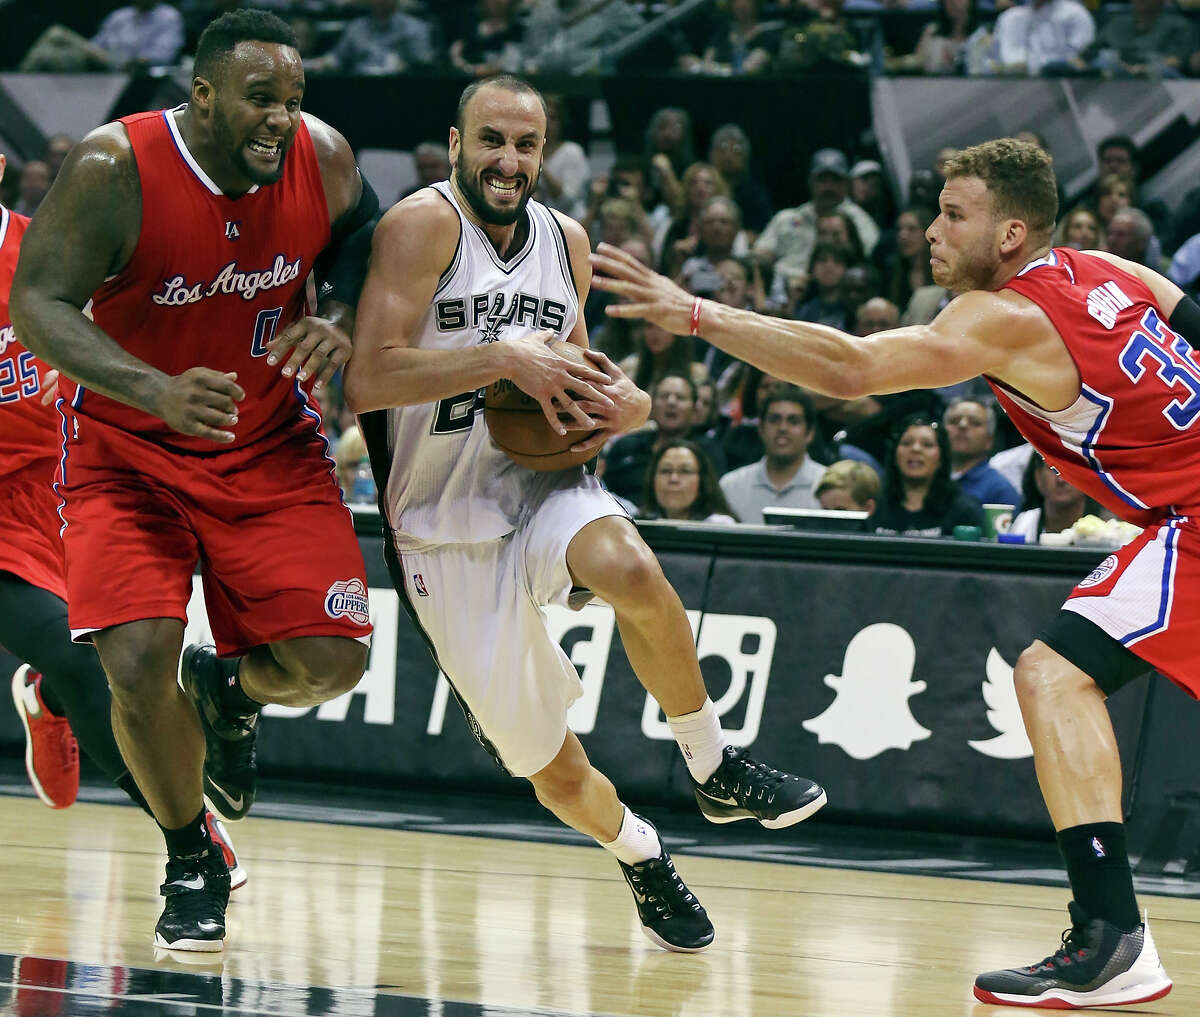 San Antonio has shared the Spurs ups and downs. How about the Spurs sharing more revenue from the AT&T Center? San Antonio Spurs' Manu Ginobili looks for room between Los Angeles Clippers' Glen Davis (left) and Blake Griffin during second half action of Game 3 in the Western Conference playoffs in April.